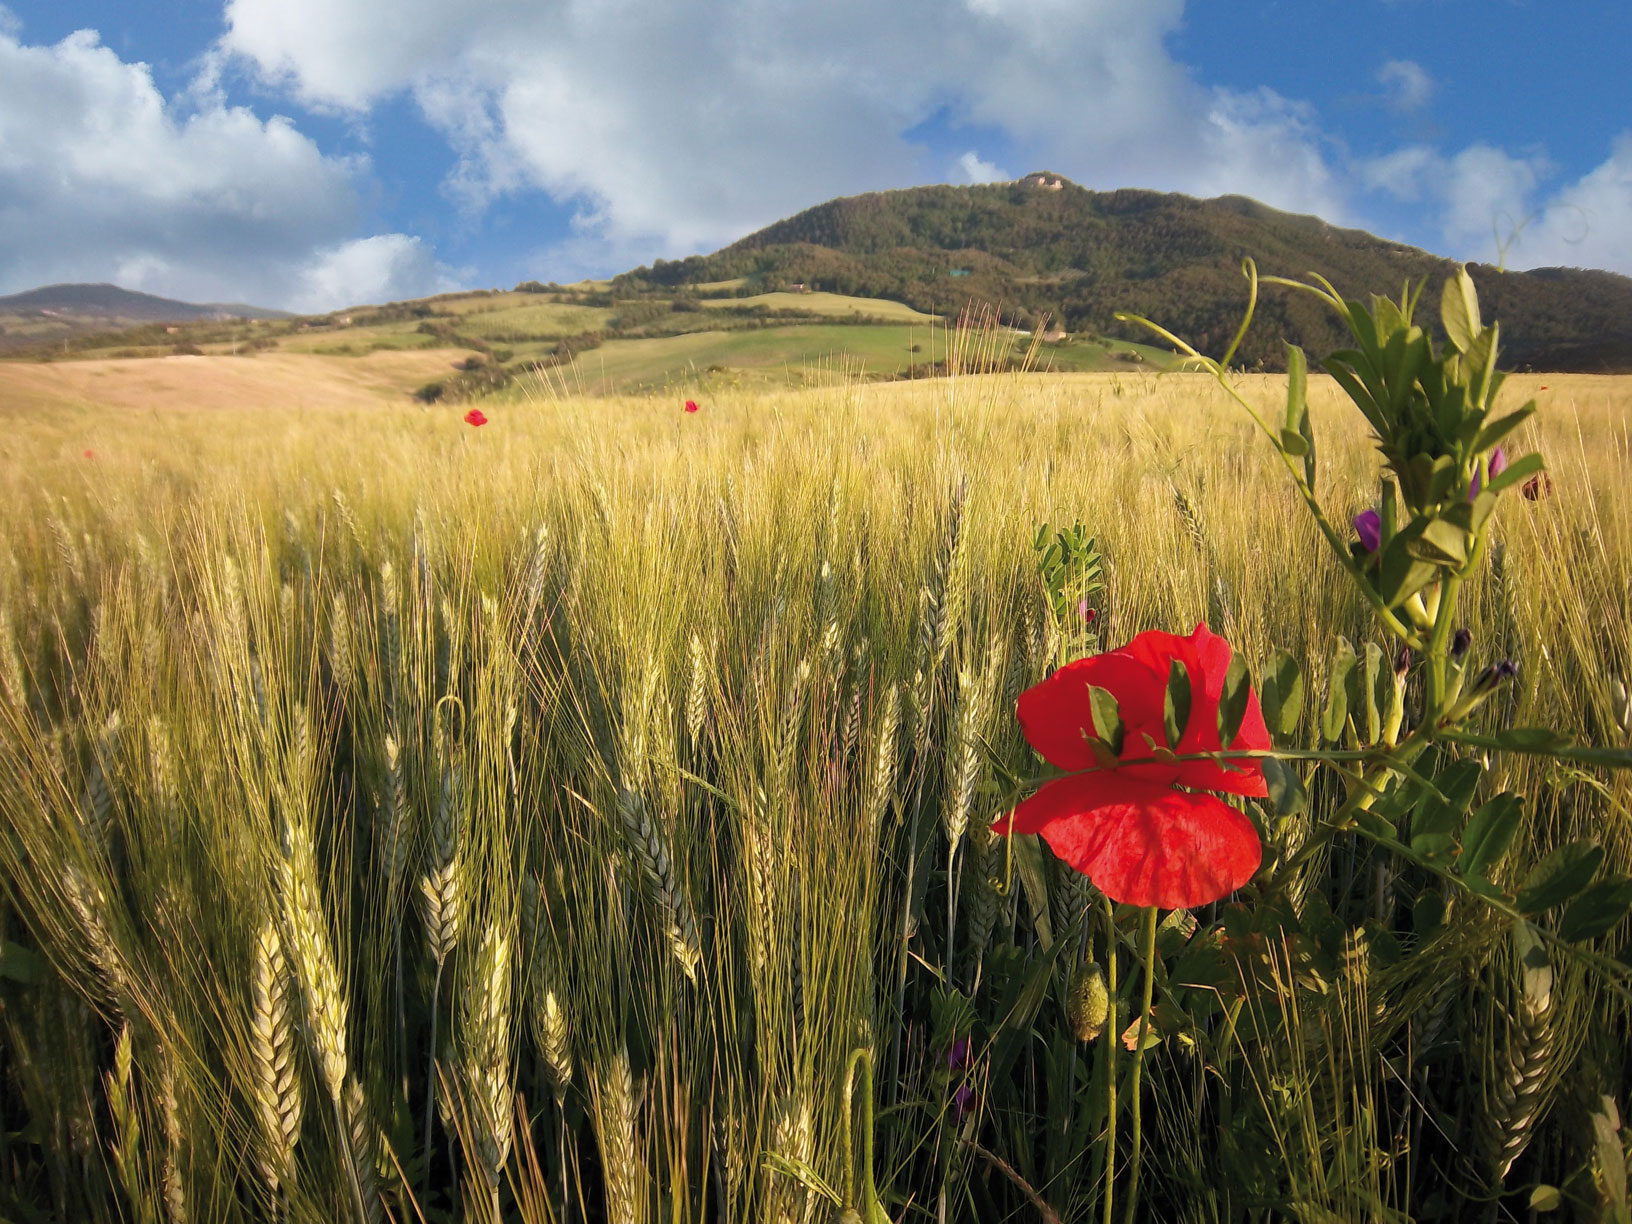 field of wheat with a red flower Le Selvole Farmhouse